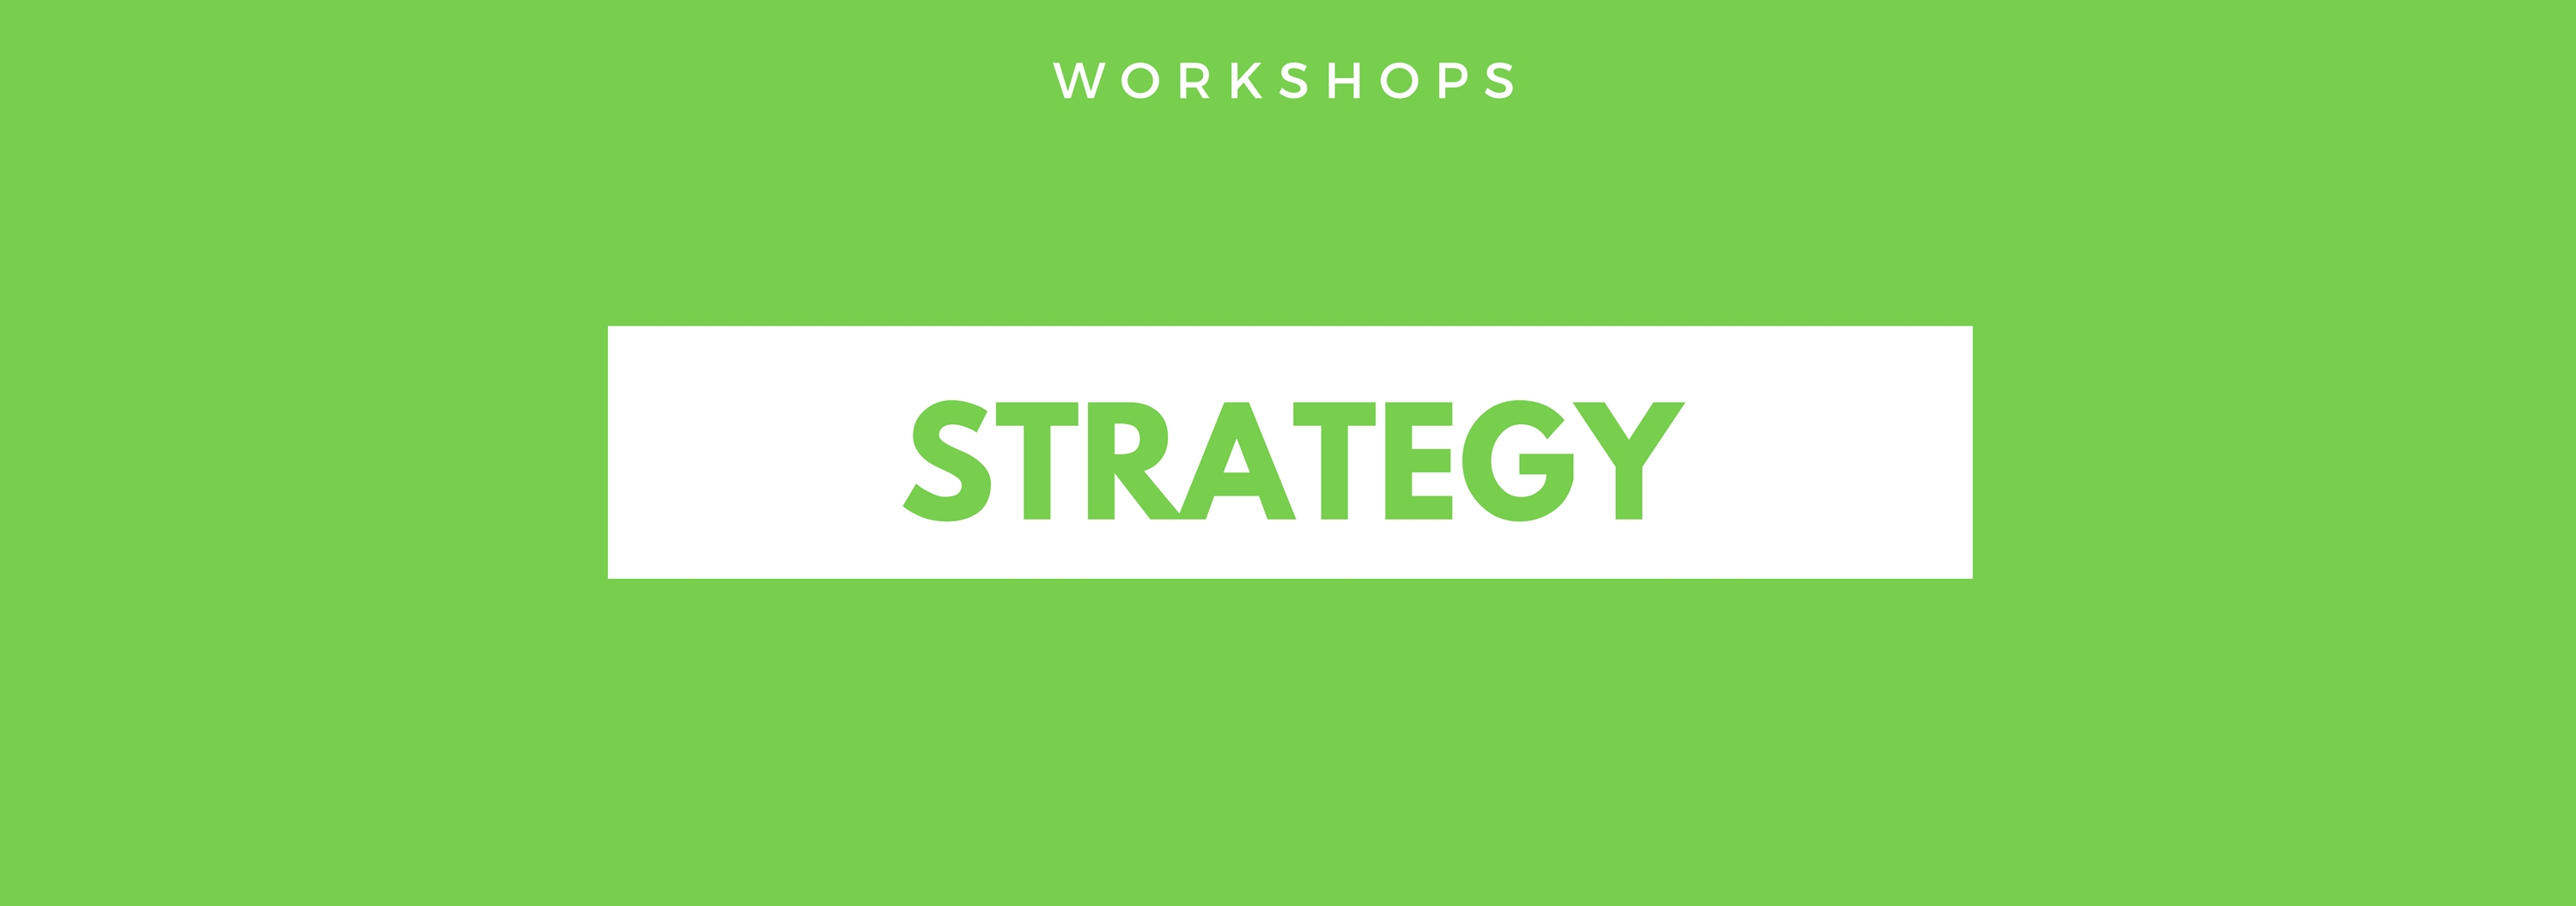 SPECIAL NEW MEMBER WORKSHOP: Strategy Design Workshop Using The Business Model Canvas with Business Models Inc.